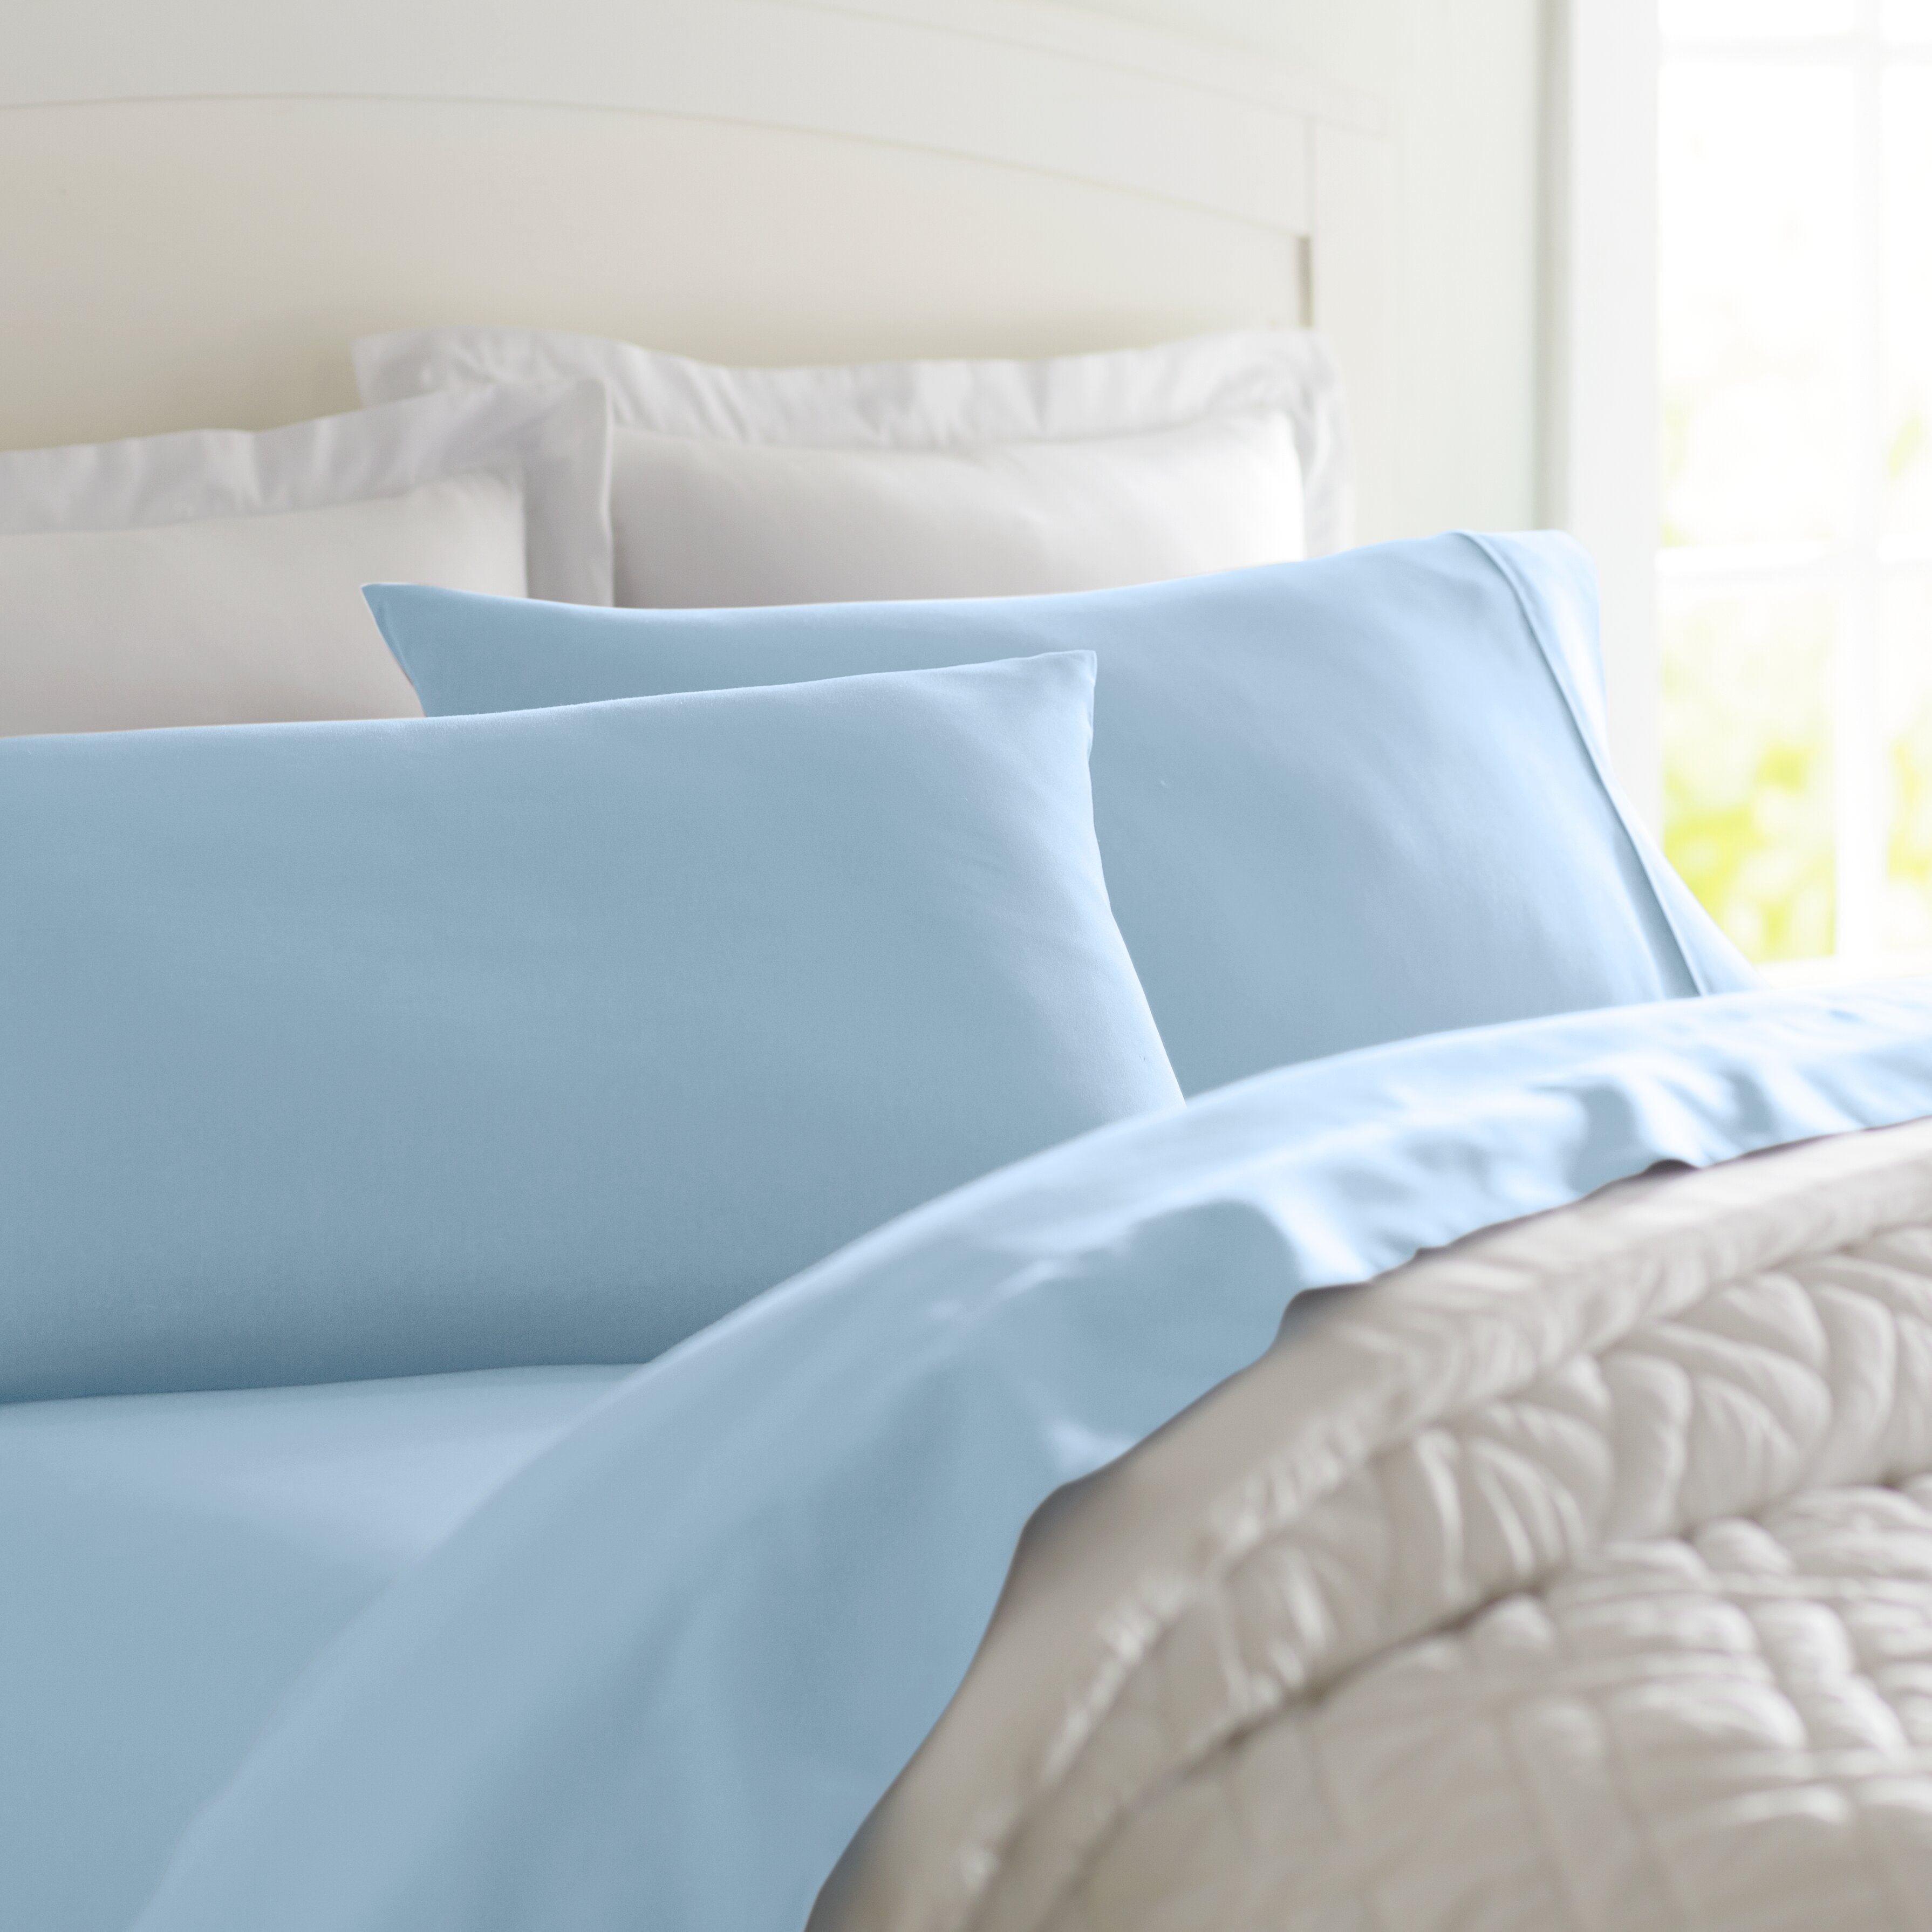 Home Bedding 4 Piece Solid Light Mint Sage Green Flat & Fitted Bed Sheet & Pillowcase Set